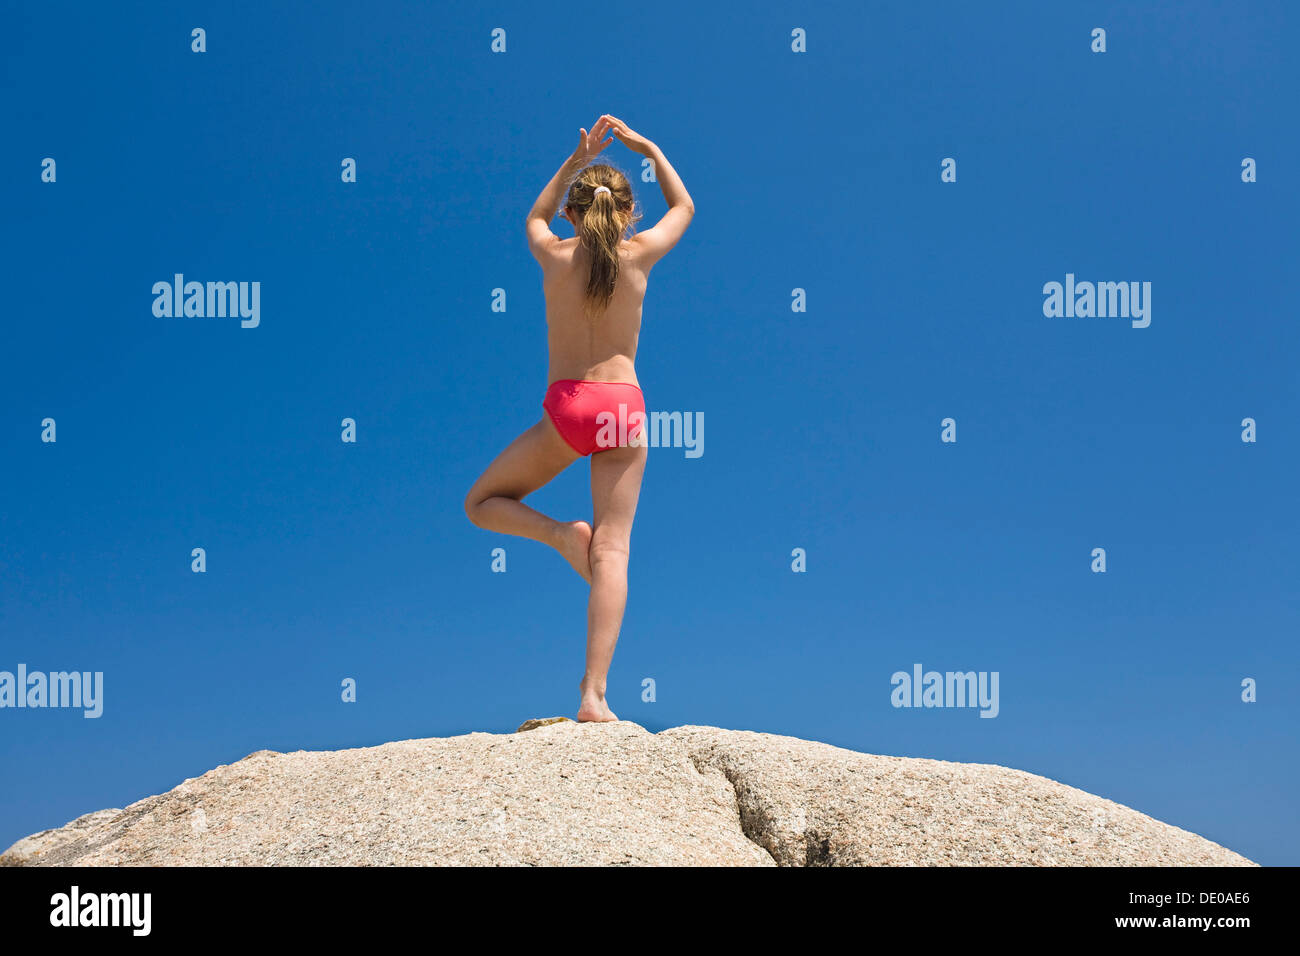 7-year-old girl doing Yoga on the rocks of Palombaggia beach, south-east coast, Balagne region, Corsica, France, Europe - Stock Image